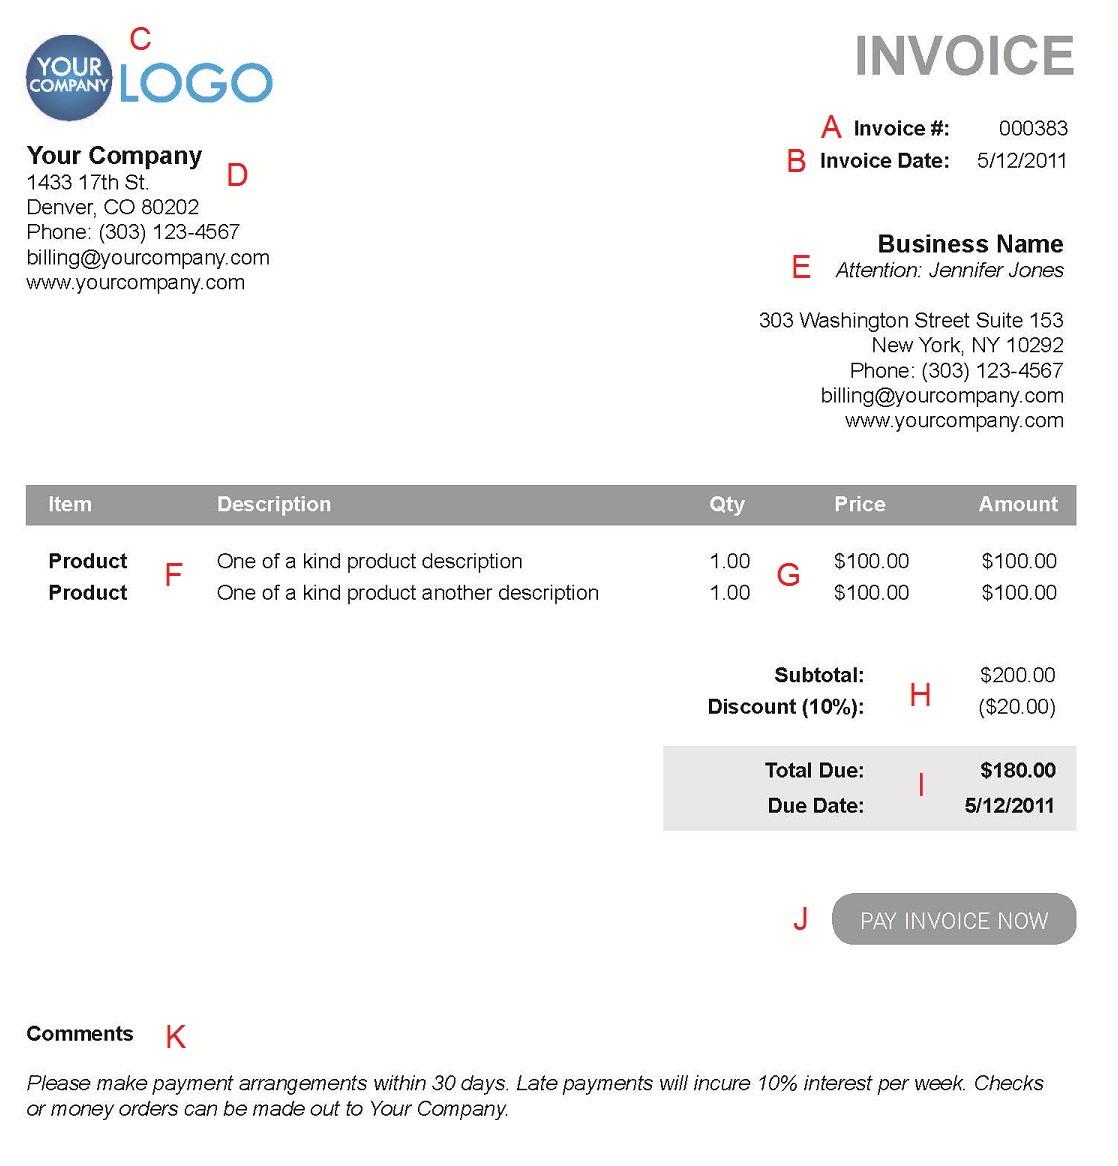 Theologygeekblogus  Splendid The  Different Sections Of An Electronic Payment Invoice With Likable A  With Comely Open Invoice Method Also Free Billing Invoice Template Microsoft Word In Addition Invoice Paid In Full And How Do I Create An Invoice As Well As Writing An Invoice For Freelance Work Additionally Invoice Price Mazda  From Paysimplecom With Theologygeekblogus  Likable The  Different Sections Of An Electronic Payment Invoice With Comely A  And Splendid Open Invoice Method Also Free Billing Invoice Template Microsoft Word In Addition Invoice Paid In Full From Paysimplecom